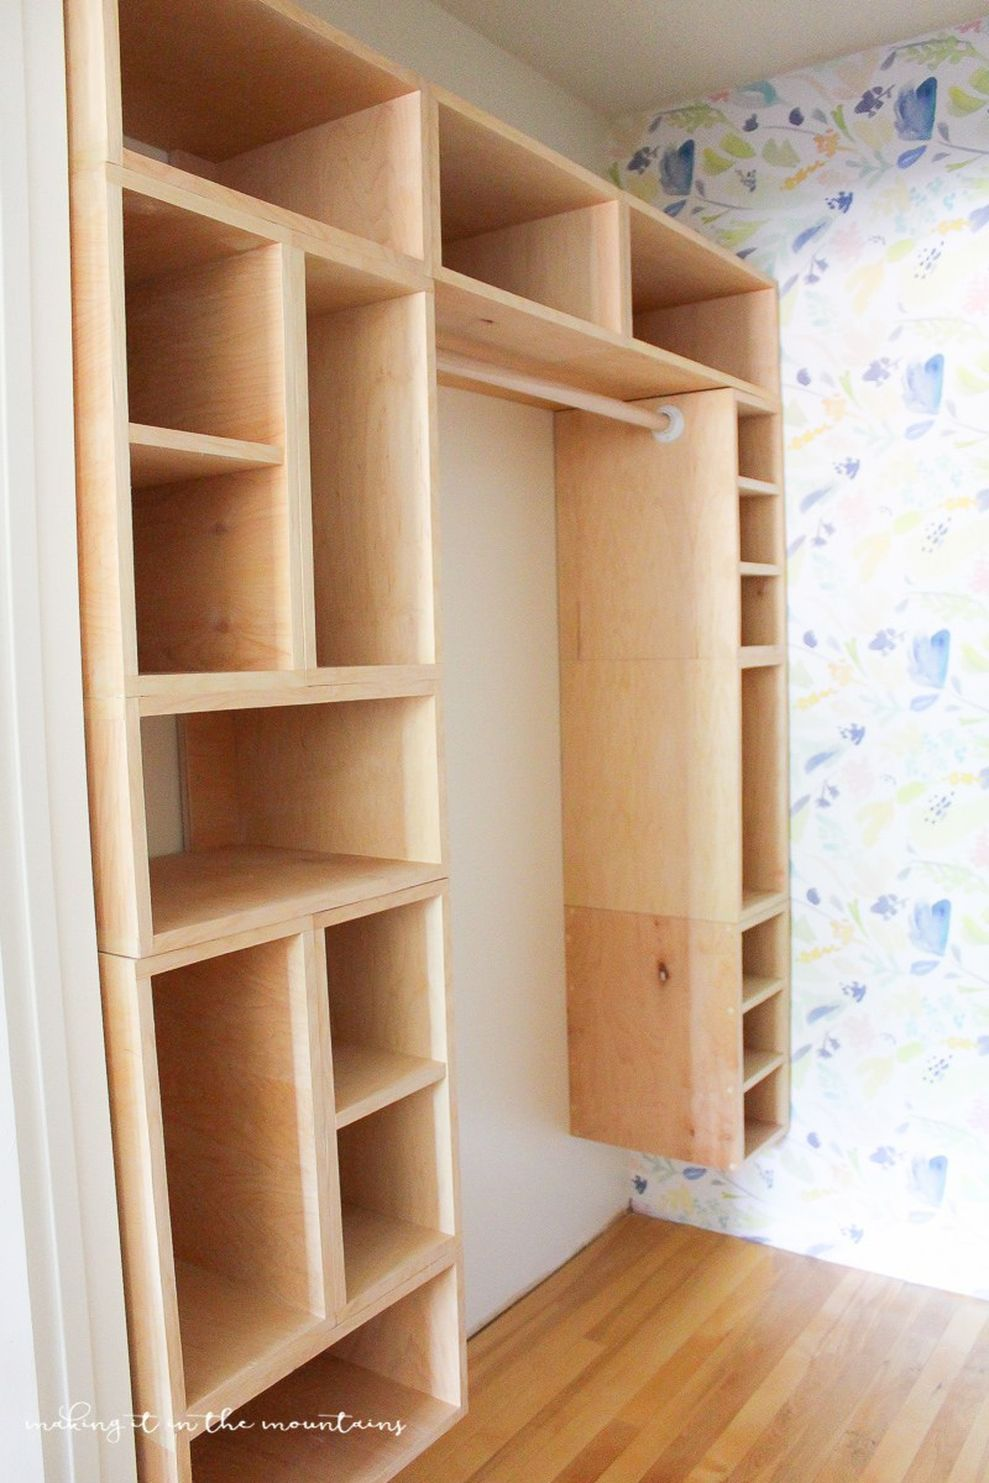 organization chocoaddicts advantage wood com woodcrest solid shelving many closet organizers with